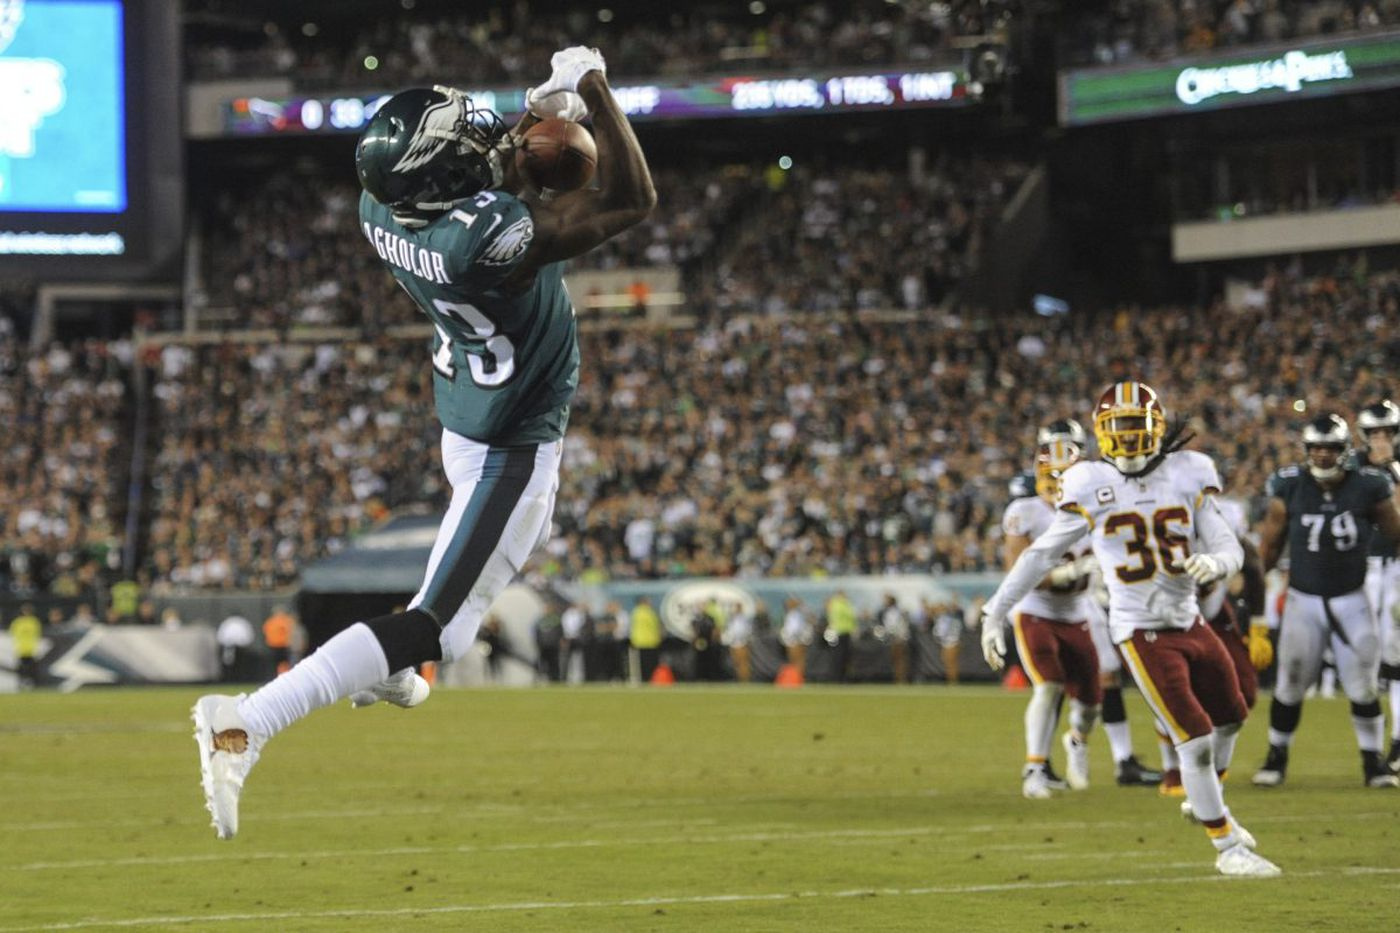 Eagles-49ers scouting report | Paul Domowitch